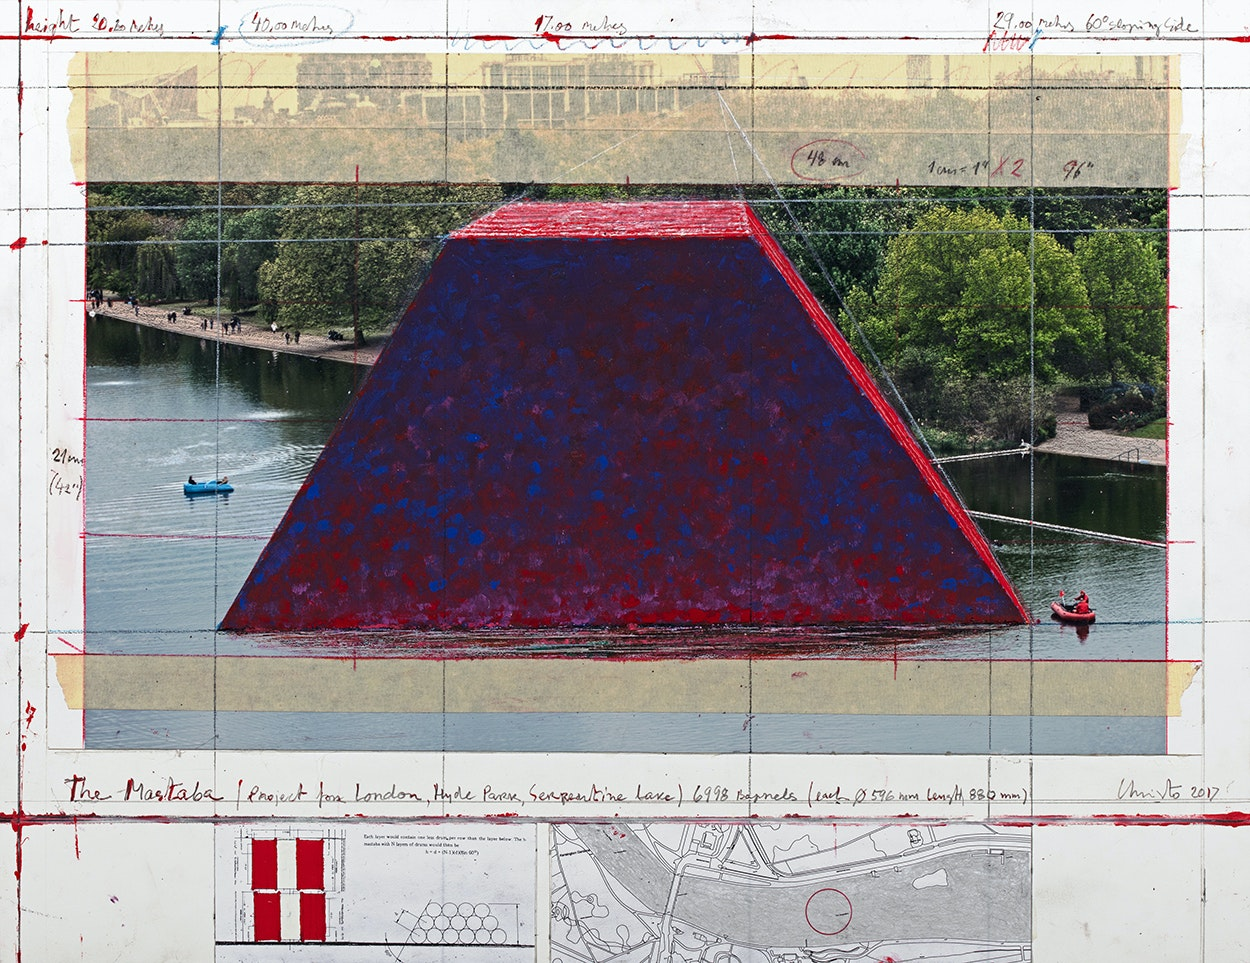 The London Mastaba - The Mastaba (Project for London, Hyde Park, Serpentine Lake) (2)